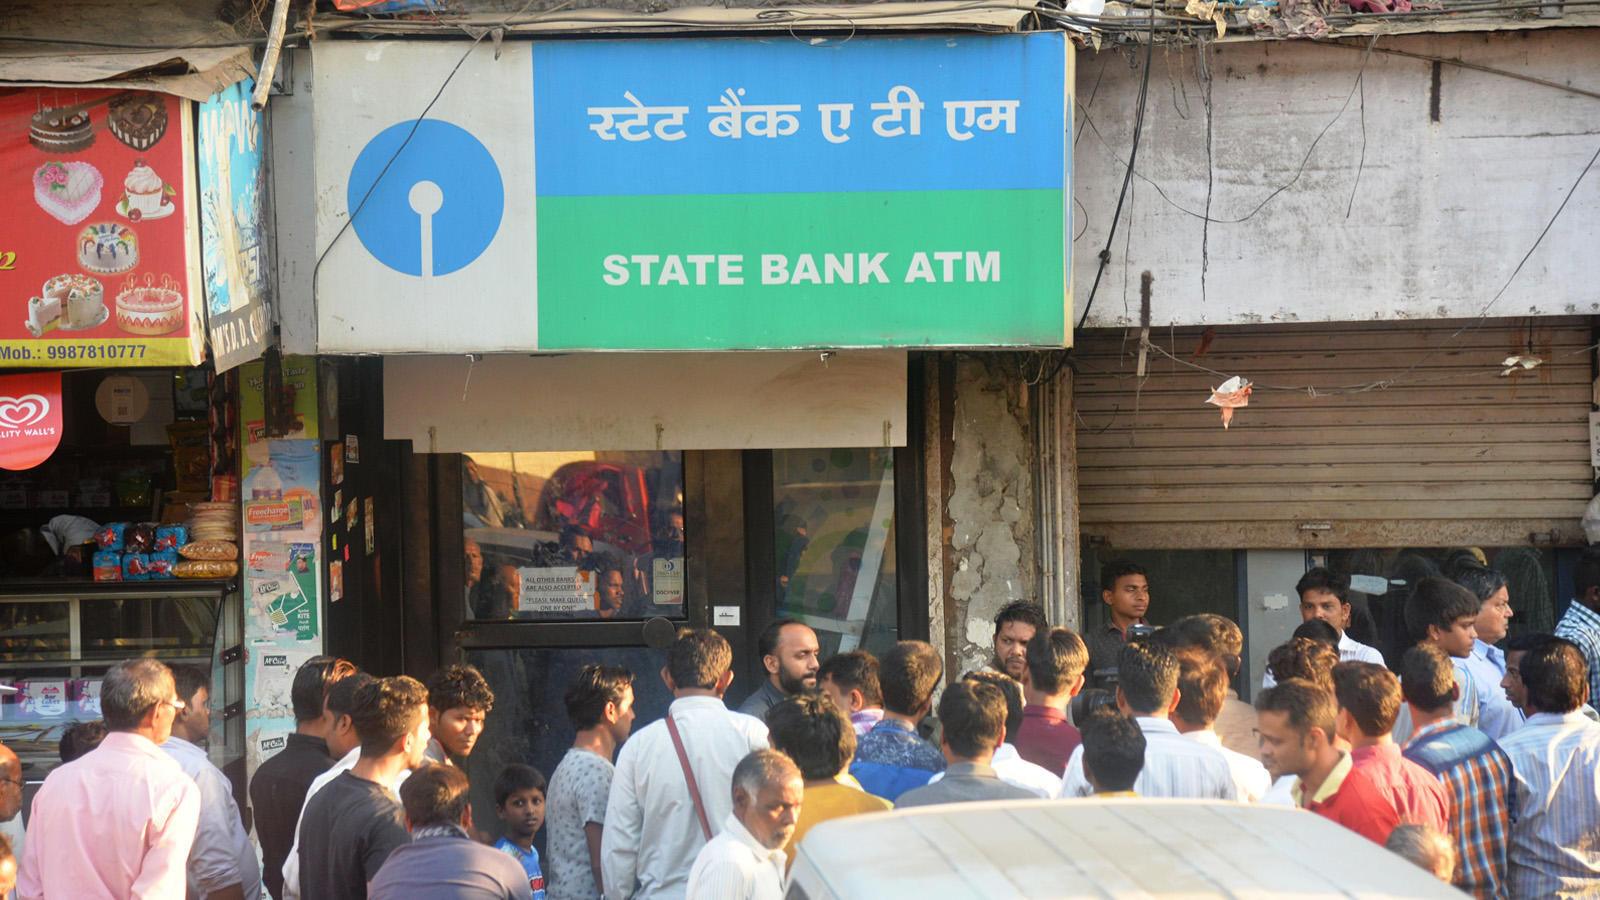 sbi-waives-rtgs-neft-imps-charges-for-online-fund-transfers